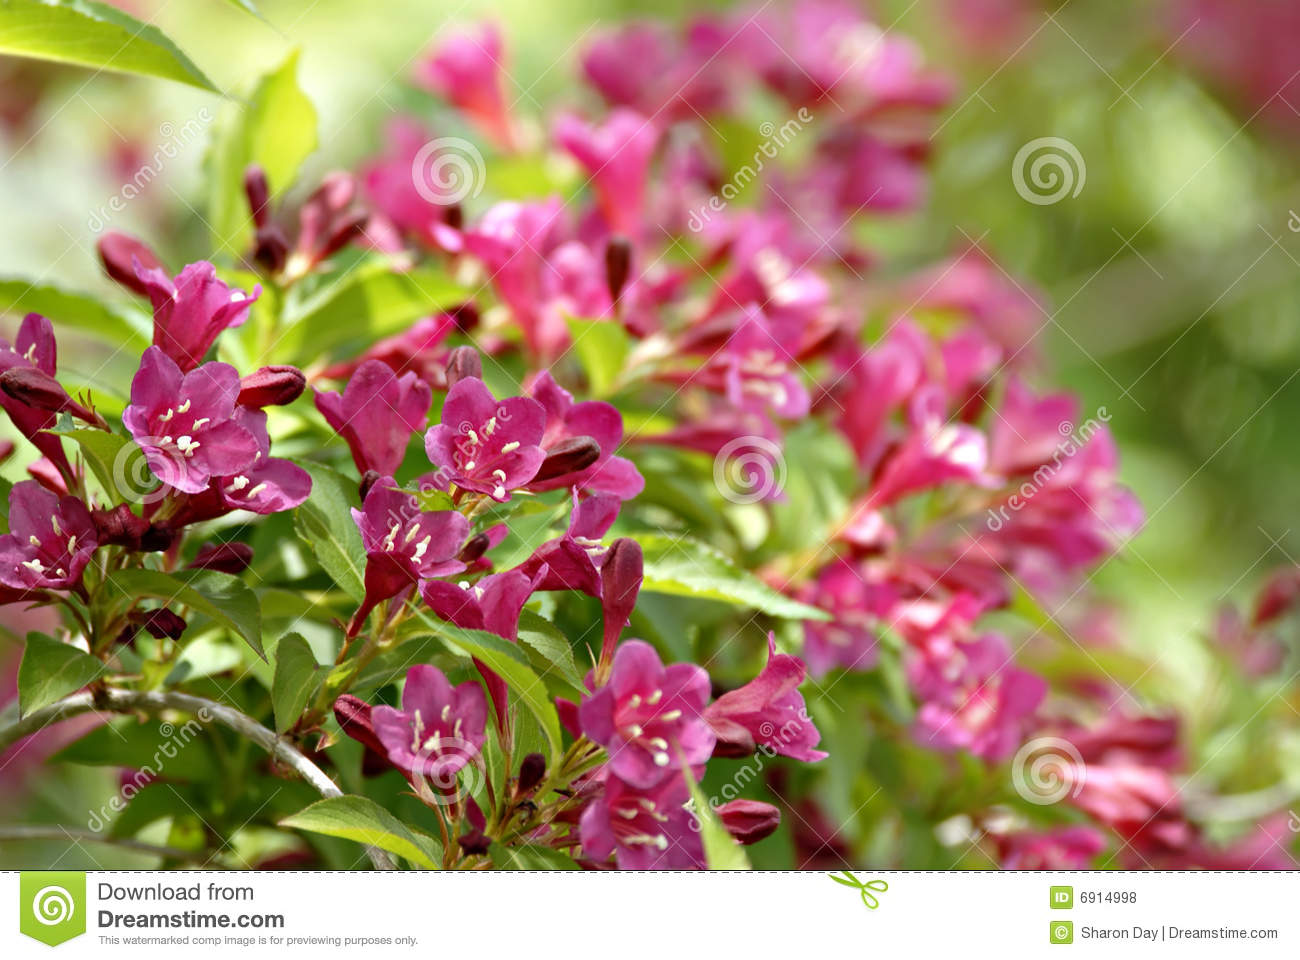 Arbuste de weigela photo stock image du instruction - Arbuste a fleurs roses identification ...